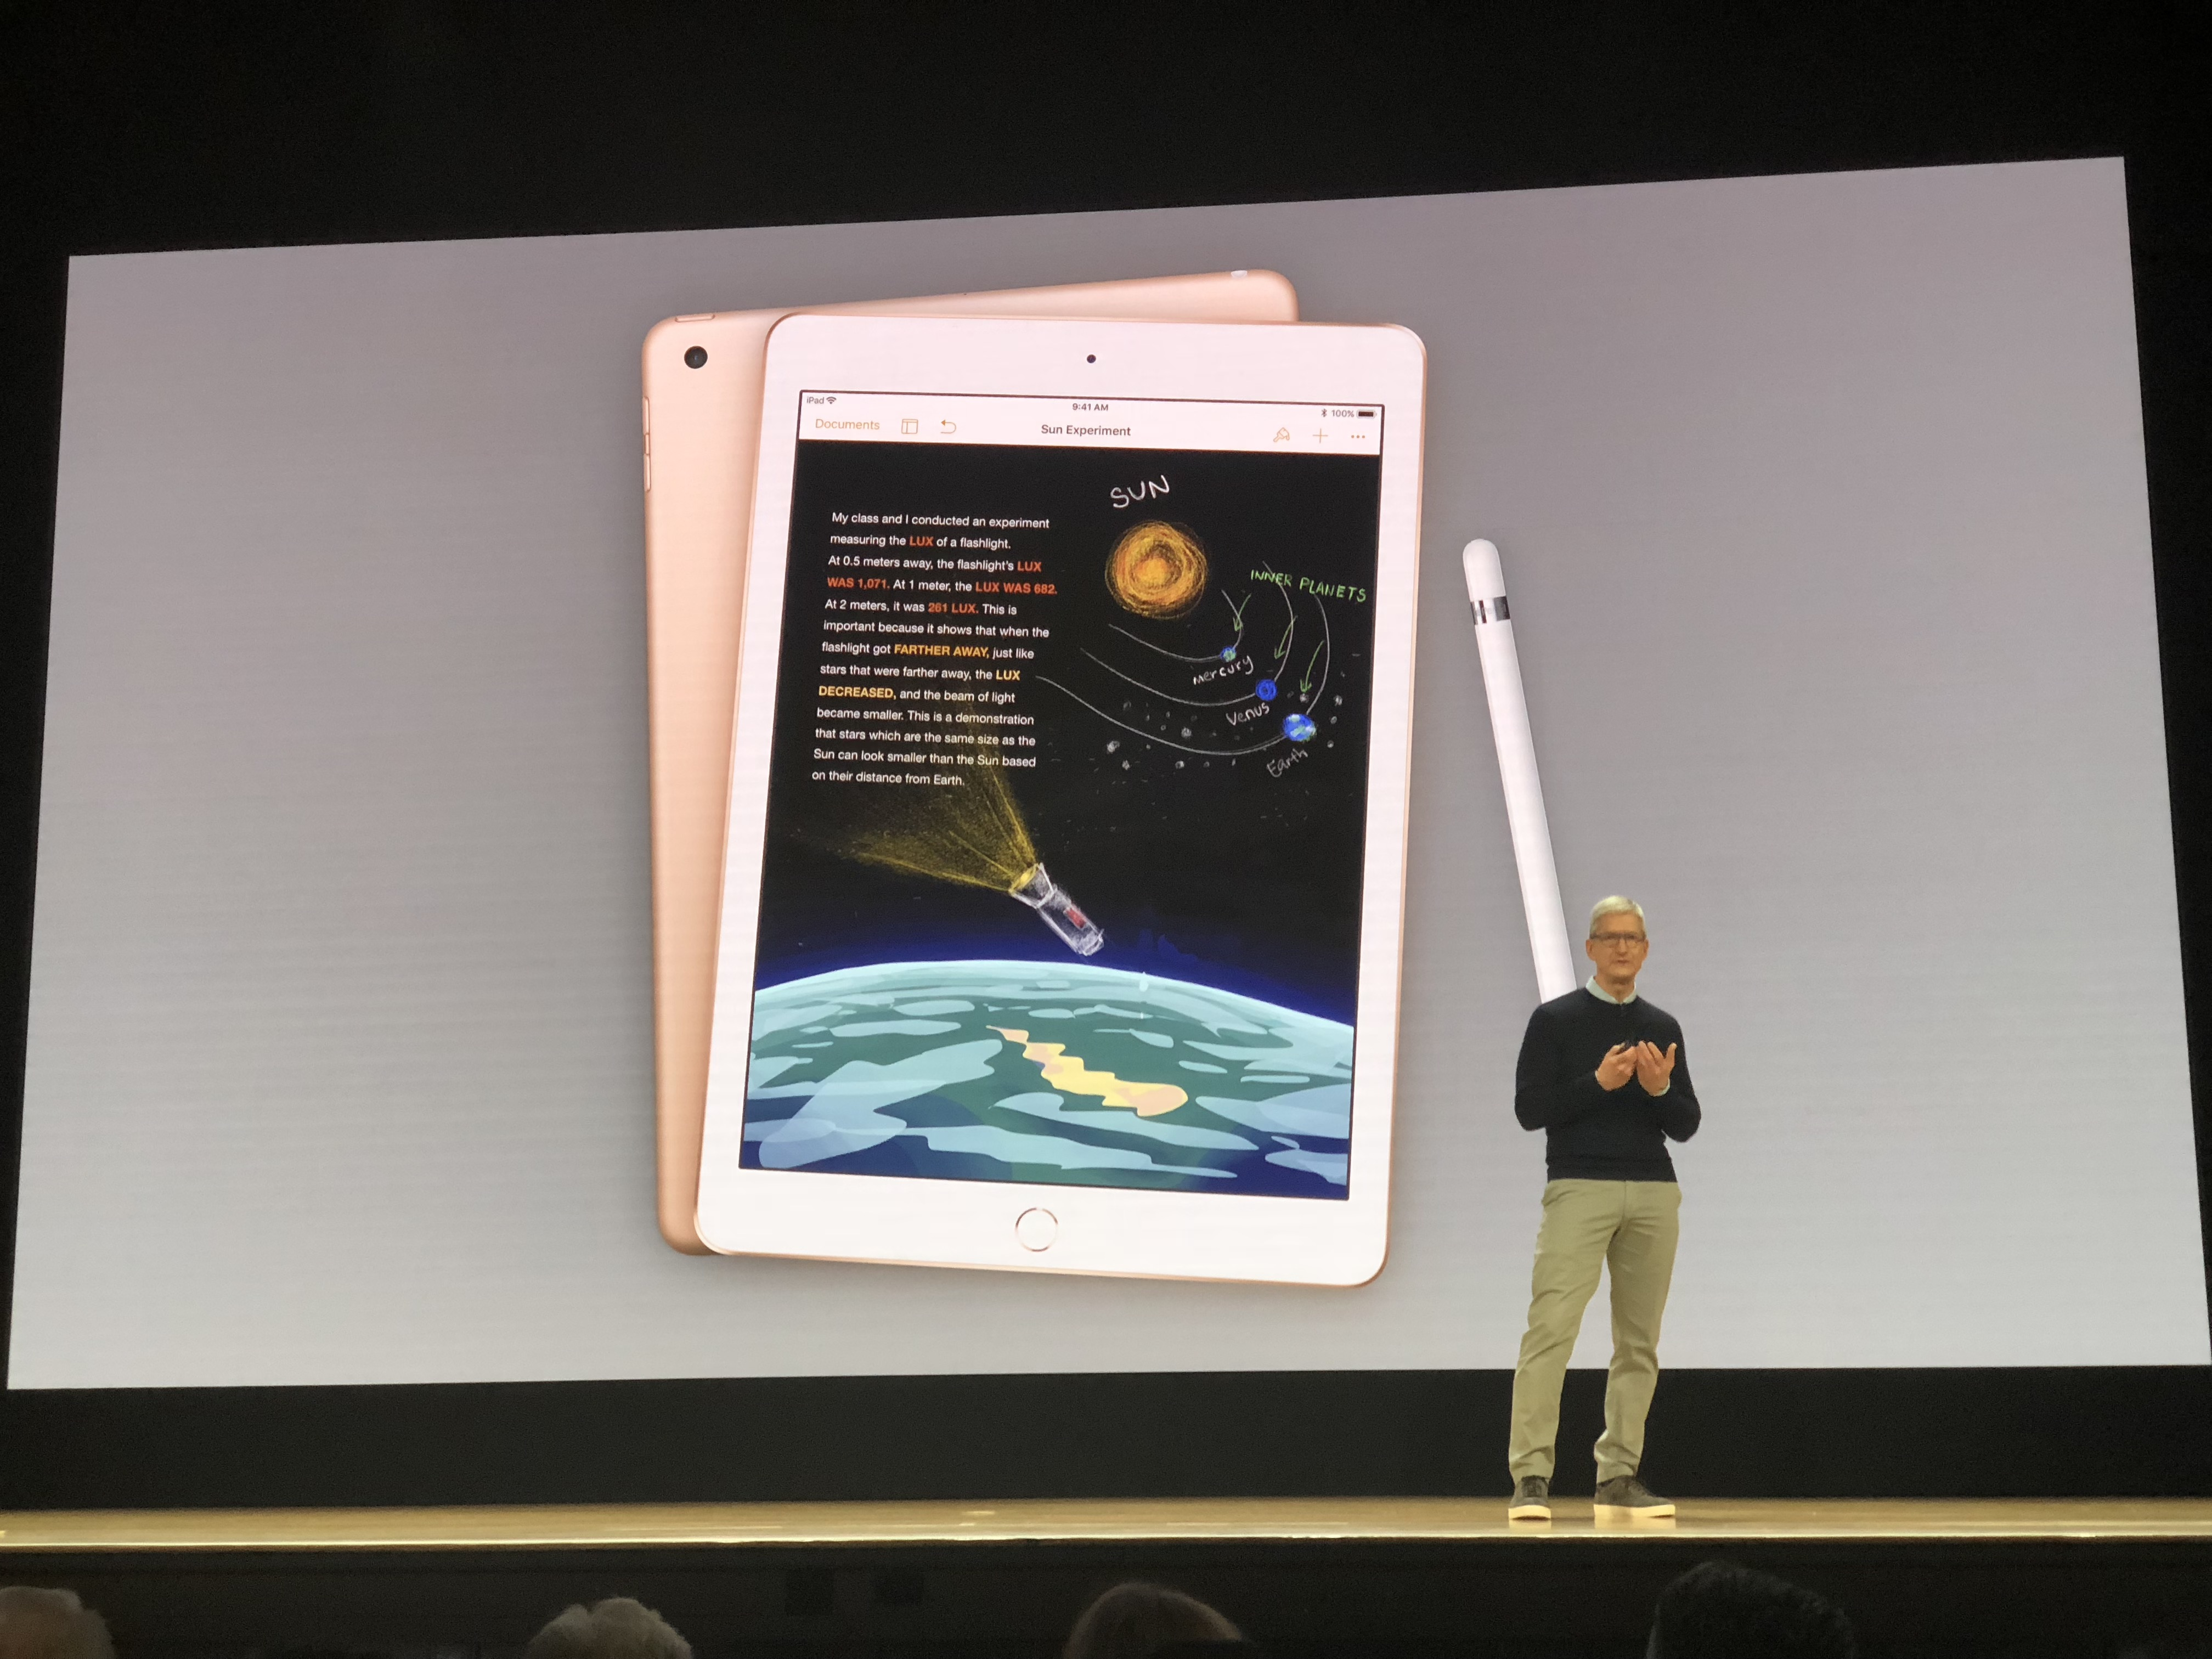 Apple unveils new iPad with Apple Pencil support to take on Chromebooks